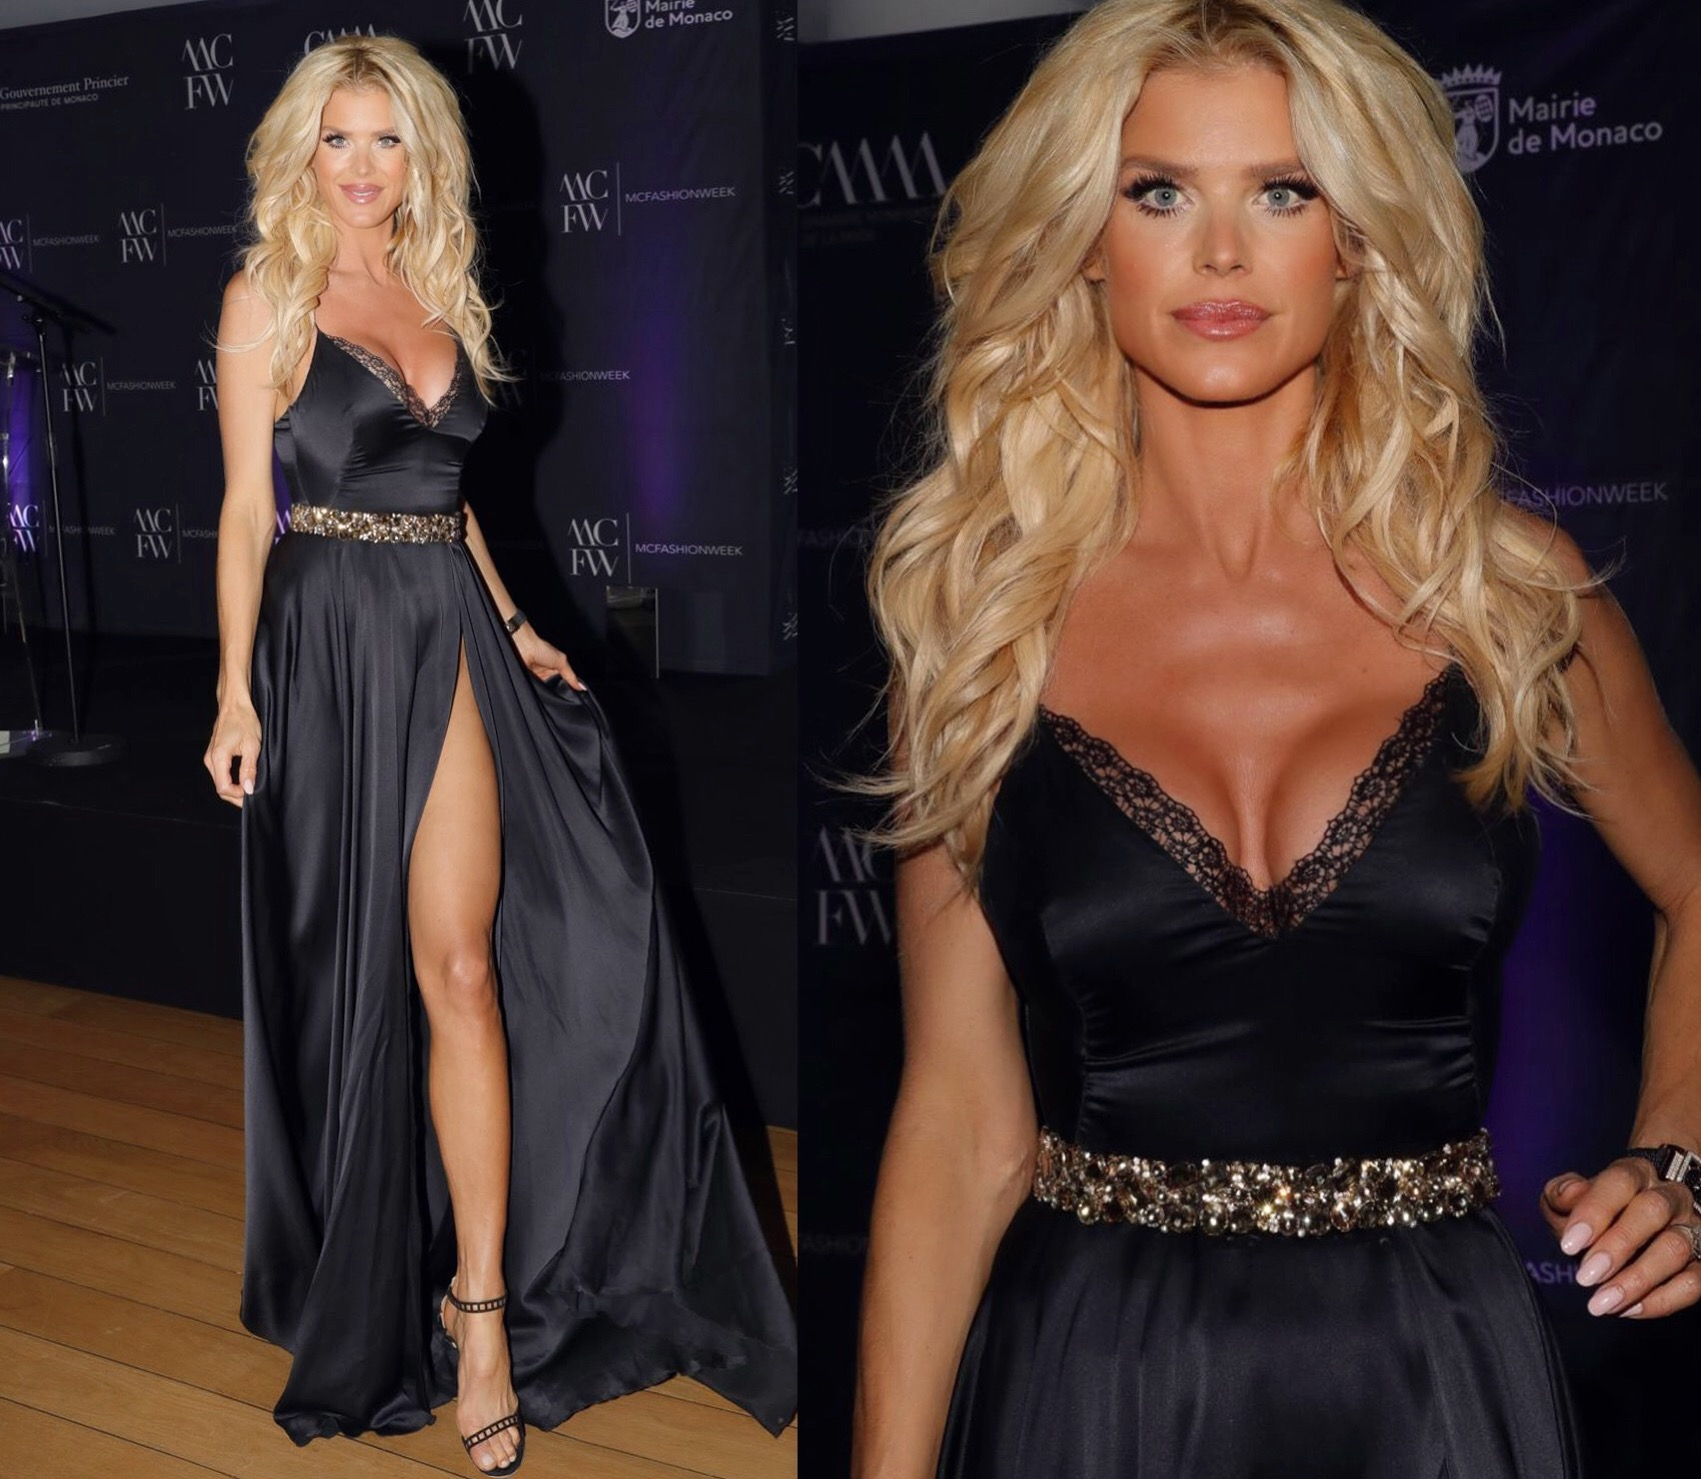 VICTORIA SILVSTEDT DRESSED BY RAQUEL BALENCIA HOSTING MONACO FASHION WEEK AWARDS 2018